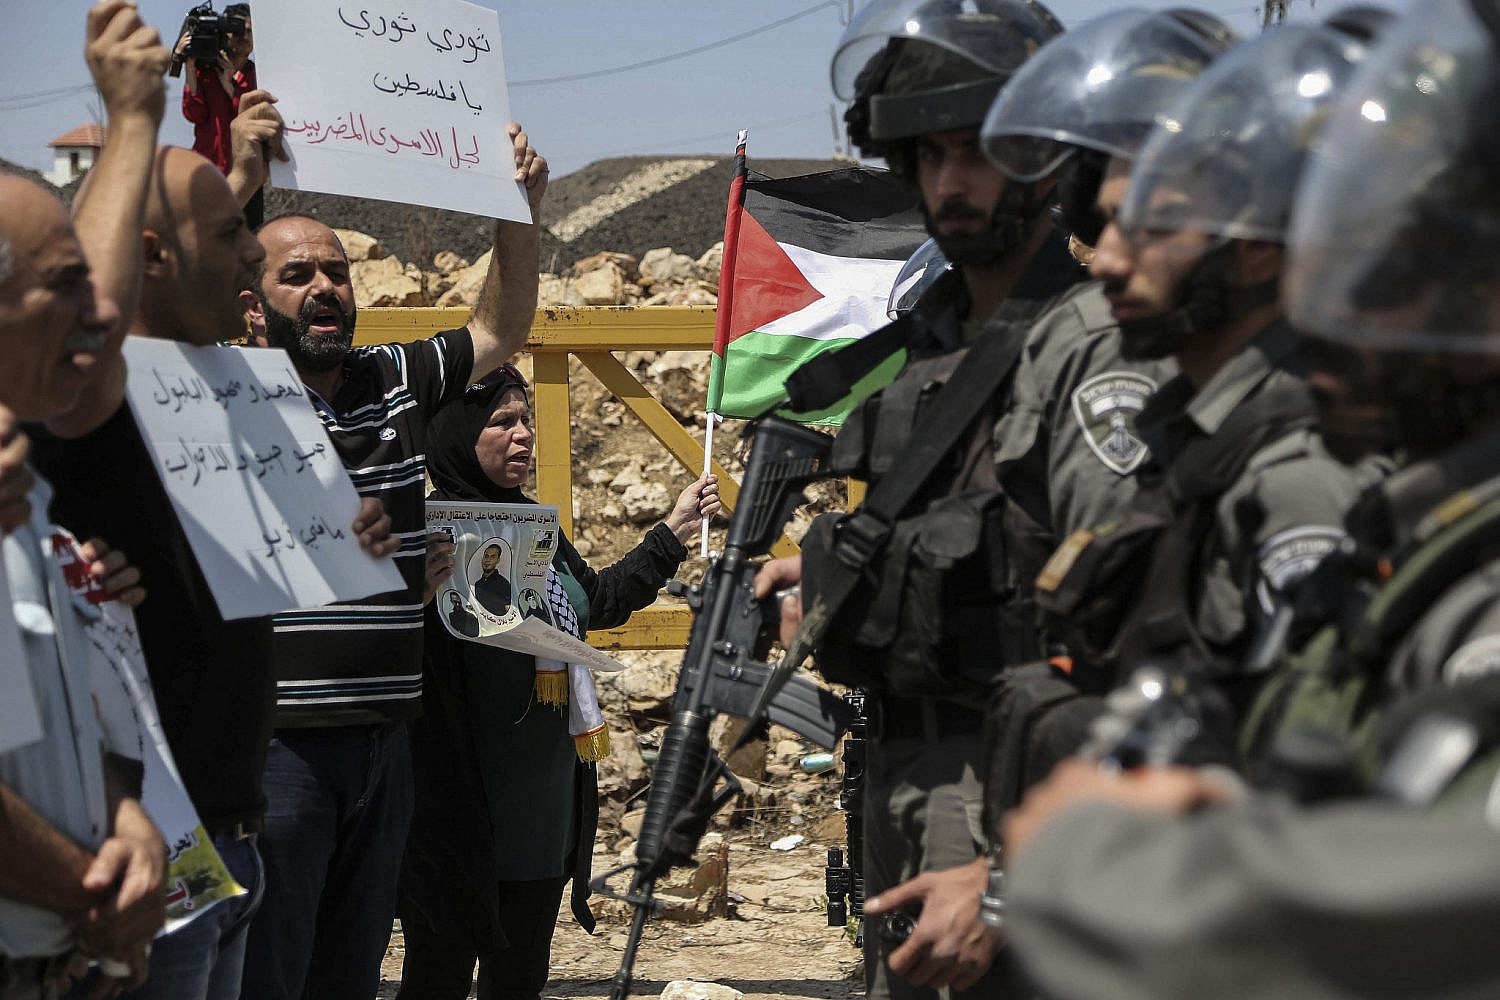 Palestinian protesters hold flags as they argue with Israeli border policemen during a protest in solidarity with Palestinian prisoners held in Israeli jails, in the West Bank village of Nabi Saleh, Aug. 12, 2016. (Flash90)